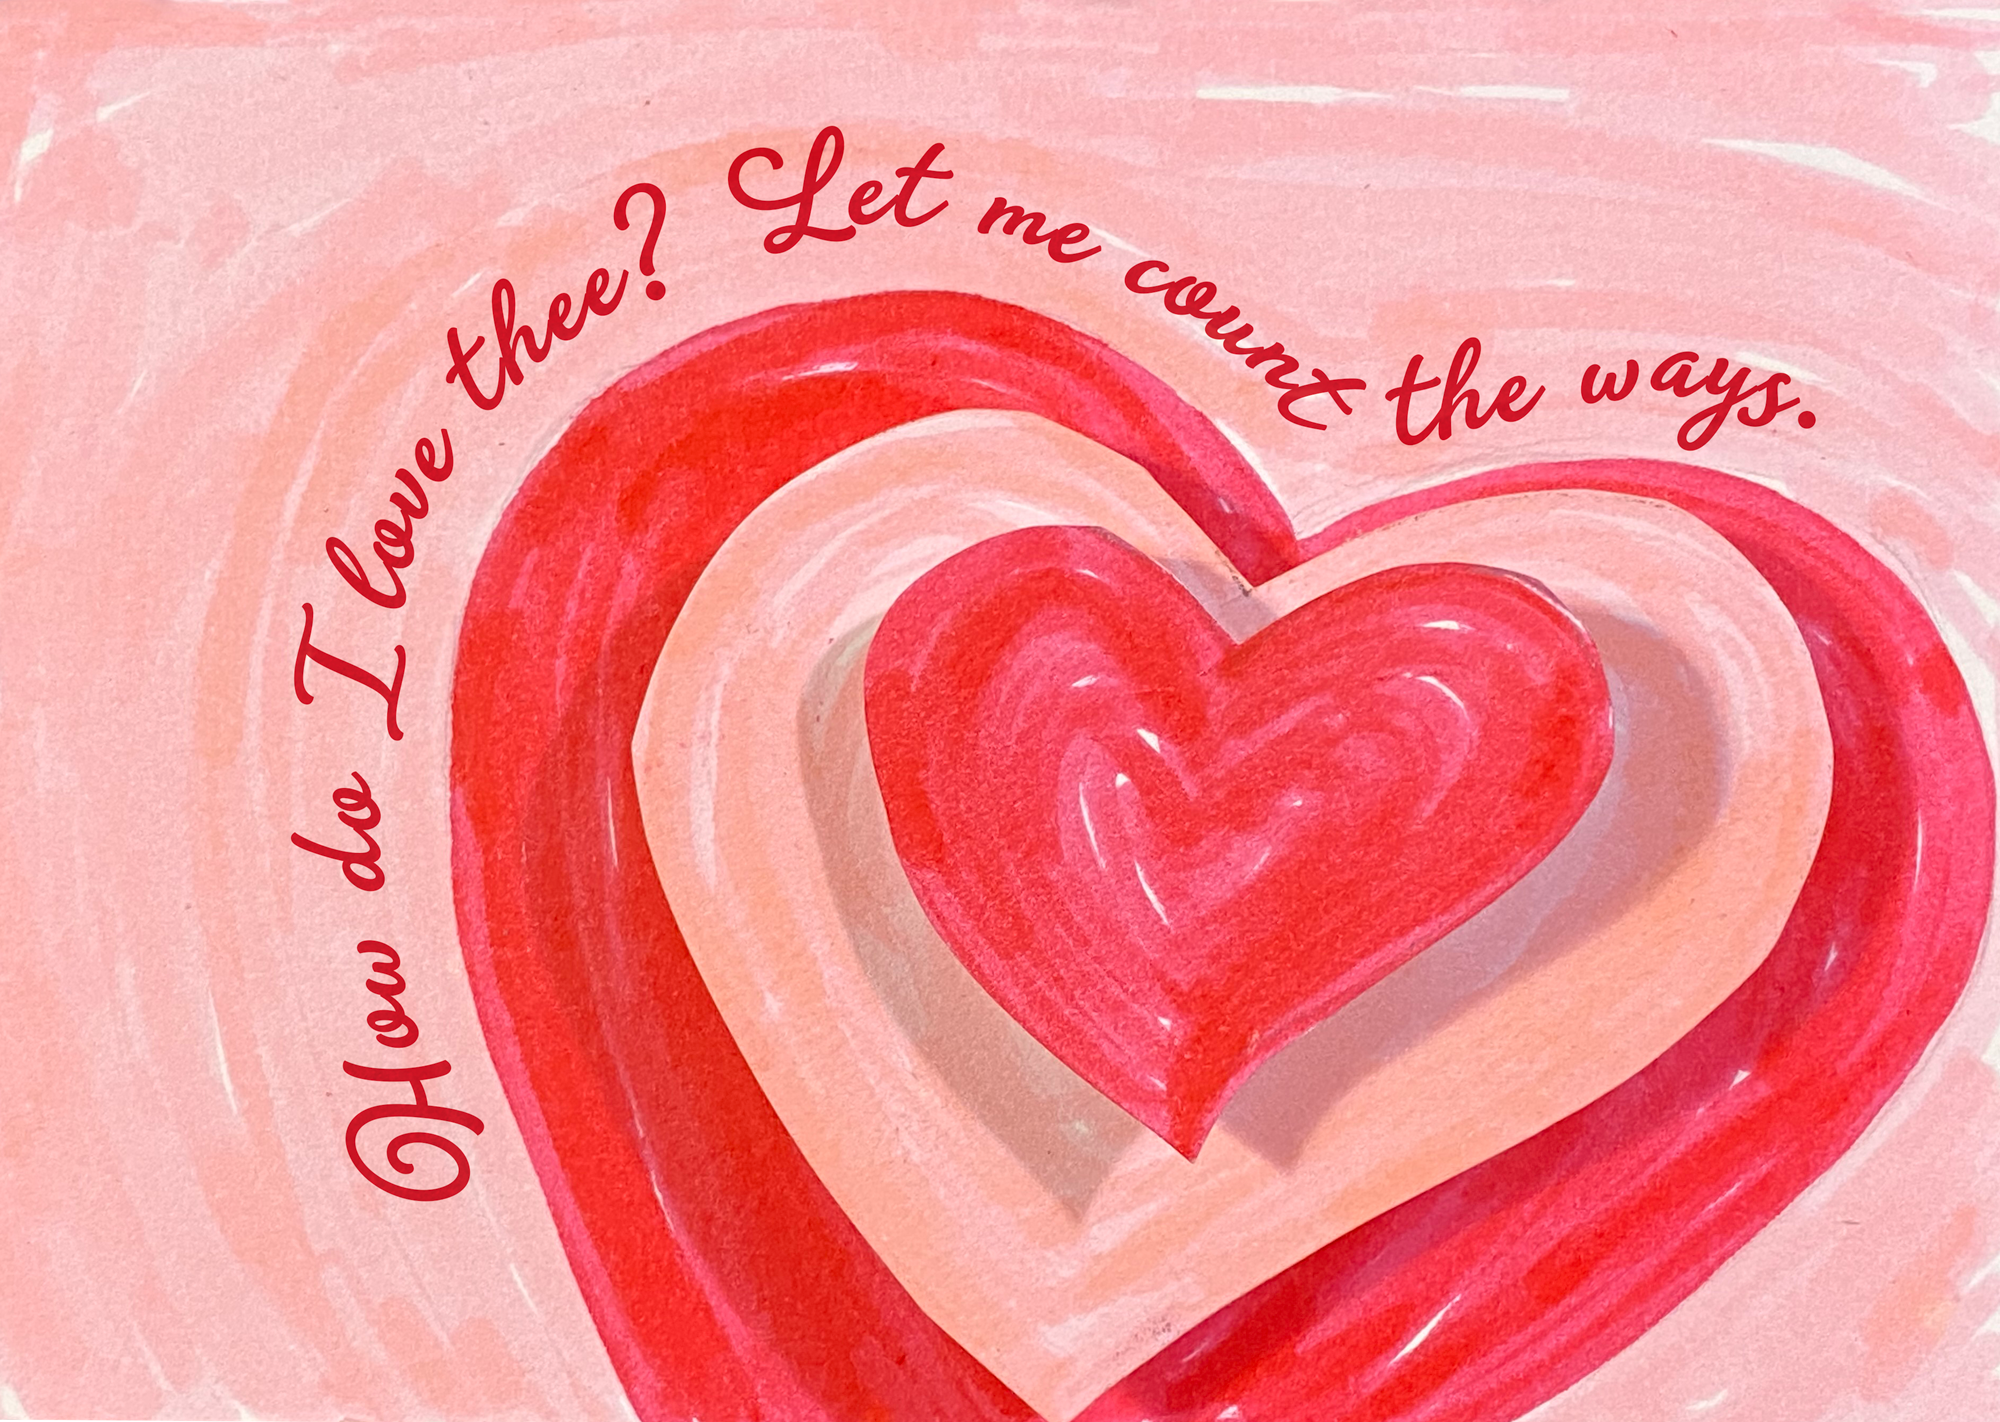 Valentines Day Pop-Up Card cover with quote: How do I love thee, let me count the way